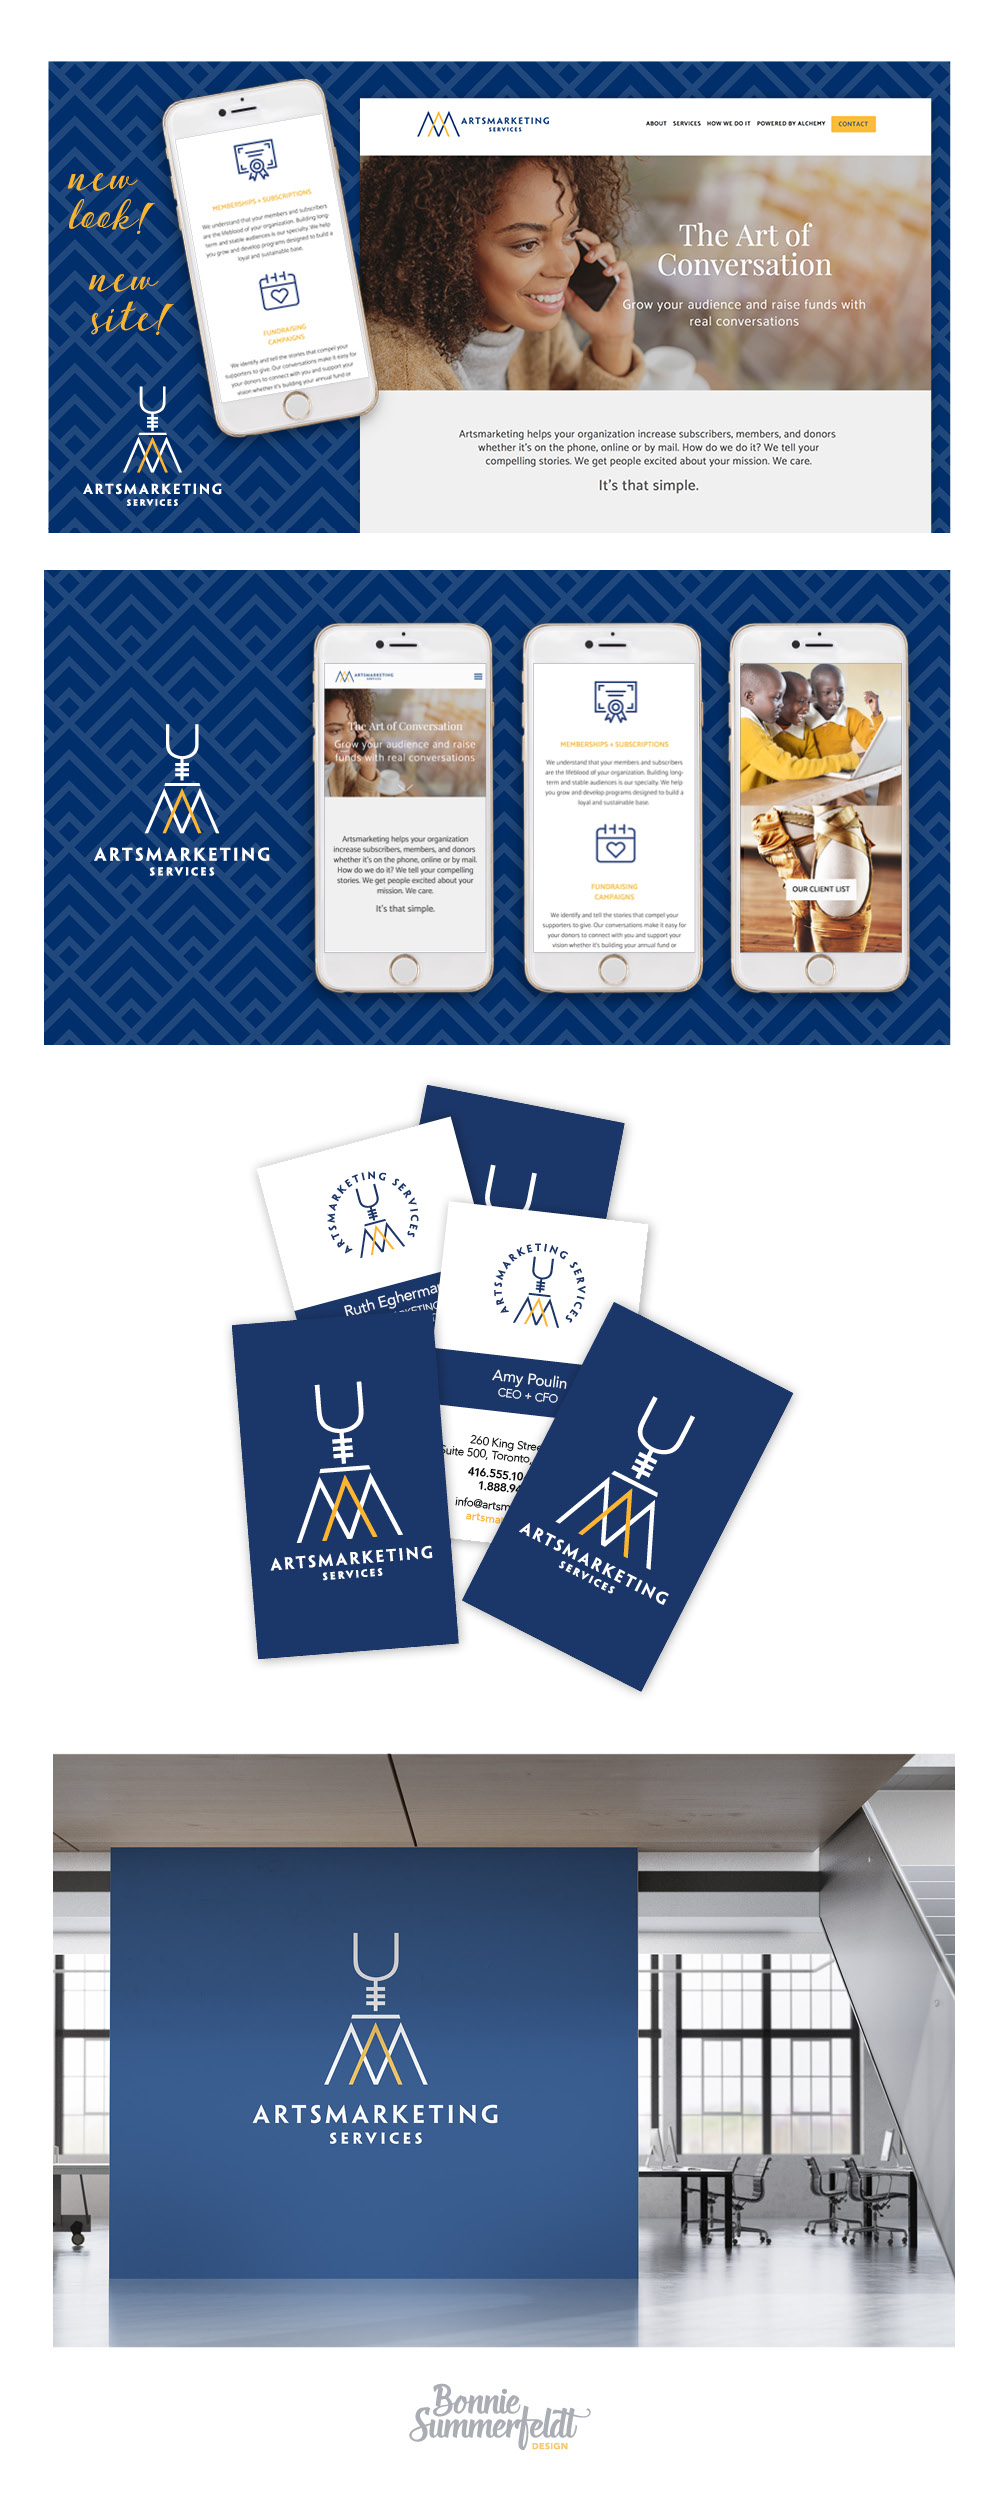 Marketing design and brand collateral design for Artsmarketing - a telemarketing company focused on helping nonprofits with fundraising using the art of conversation. Brand and logo redesign by Bonnie Summerfeldt. Serving Aurora, Newmarket and GTA Canada. Branding and logo refresh by Bonnie Summerfeldt Design – brand and website design for professional services such as consultants, therapists and advisors where credibility counts. https://bonniesummerfeldt.com